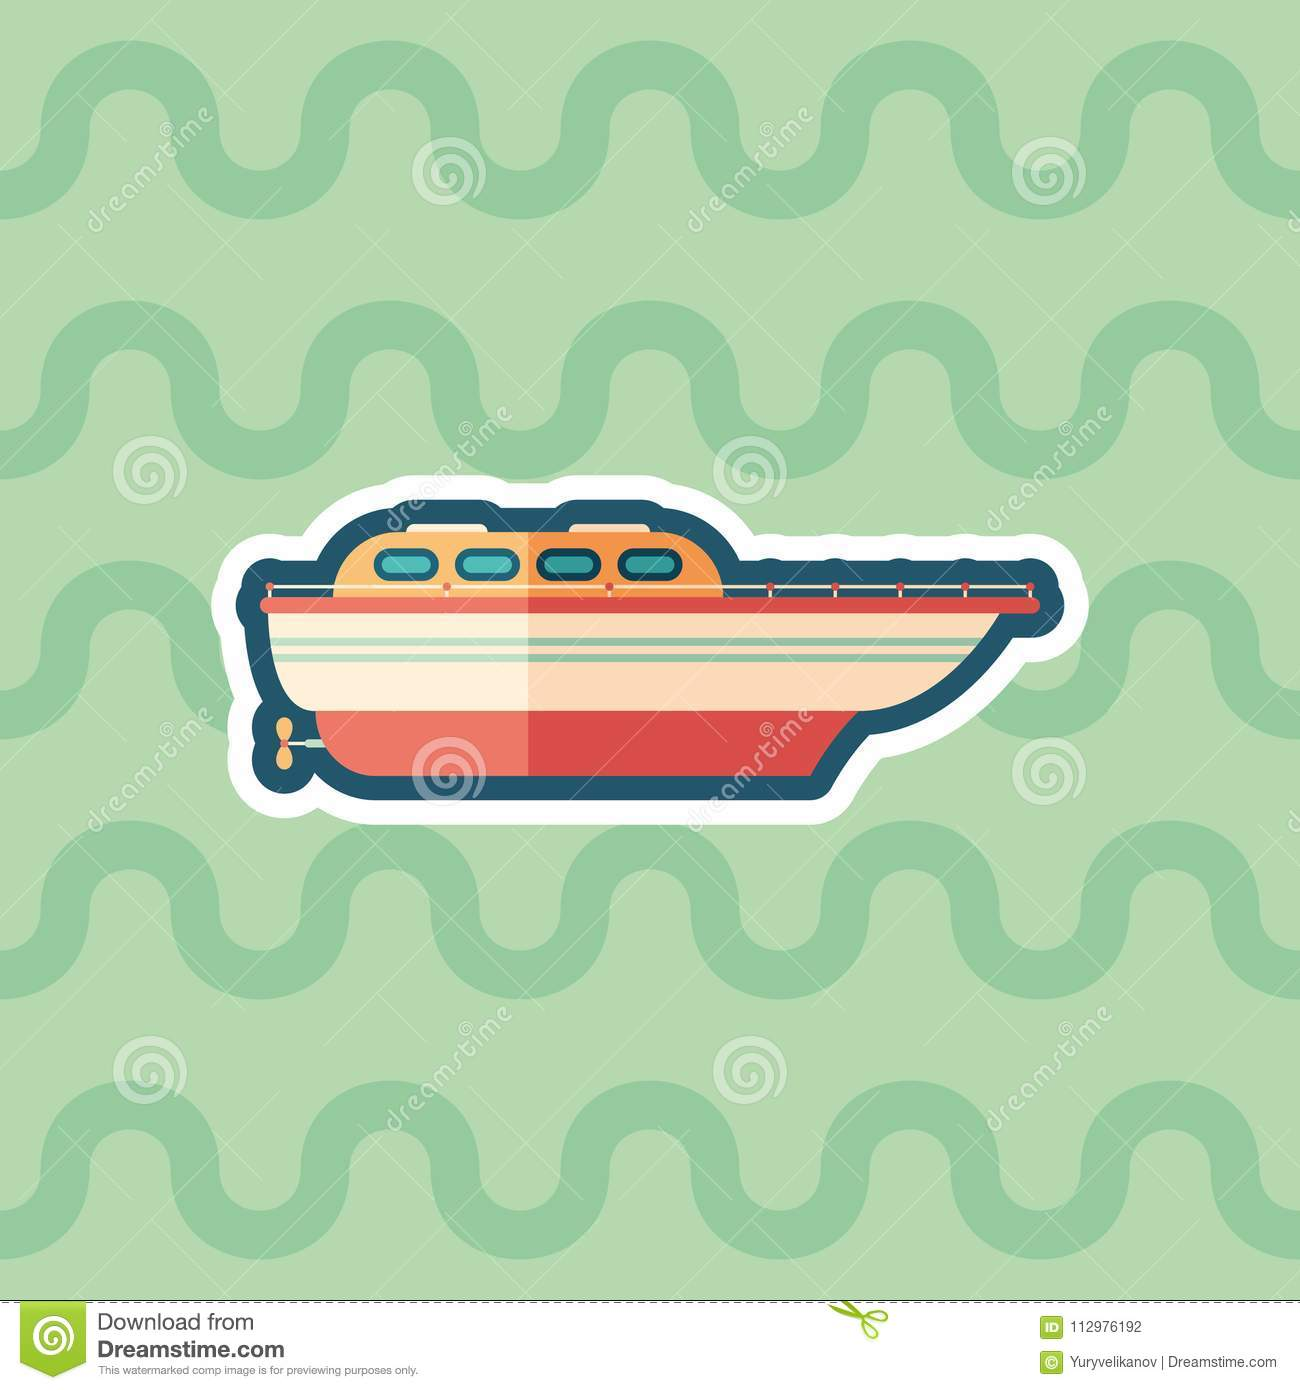 Motor boat sticker flat icon with color background.